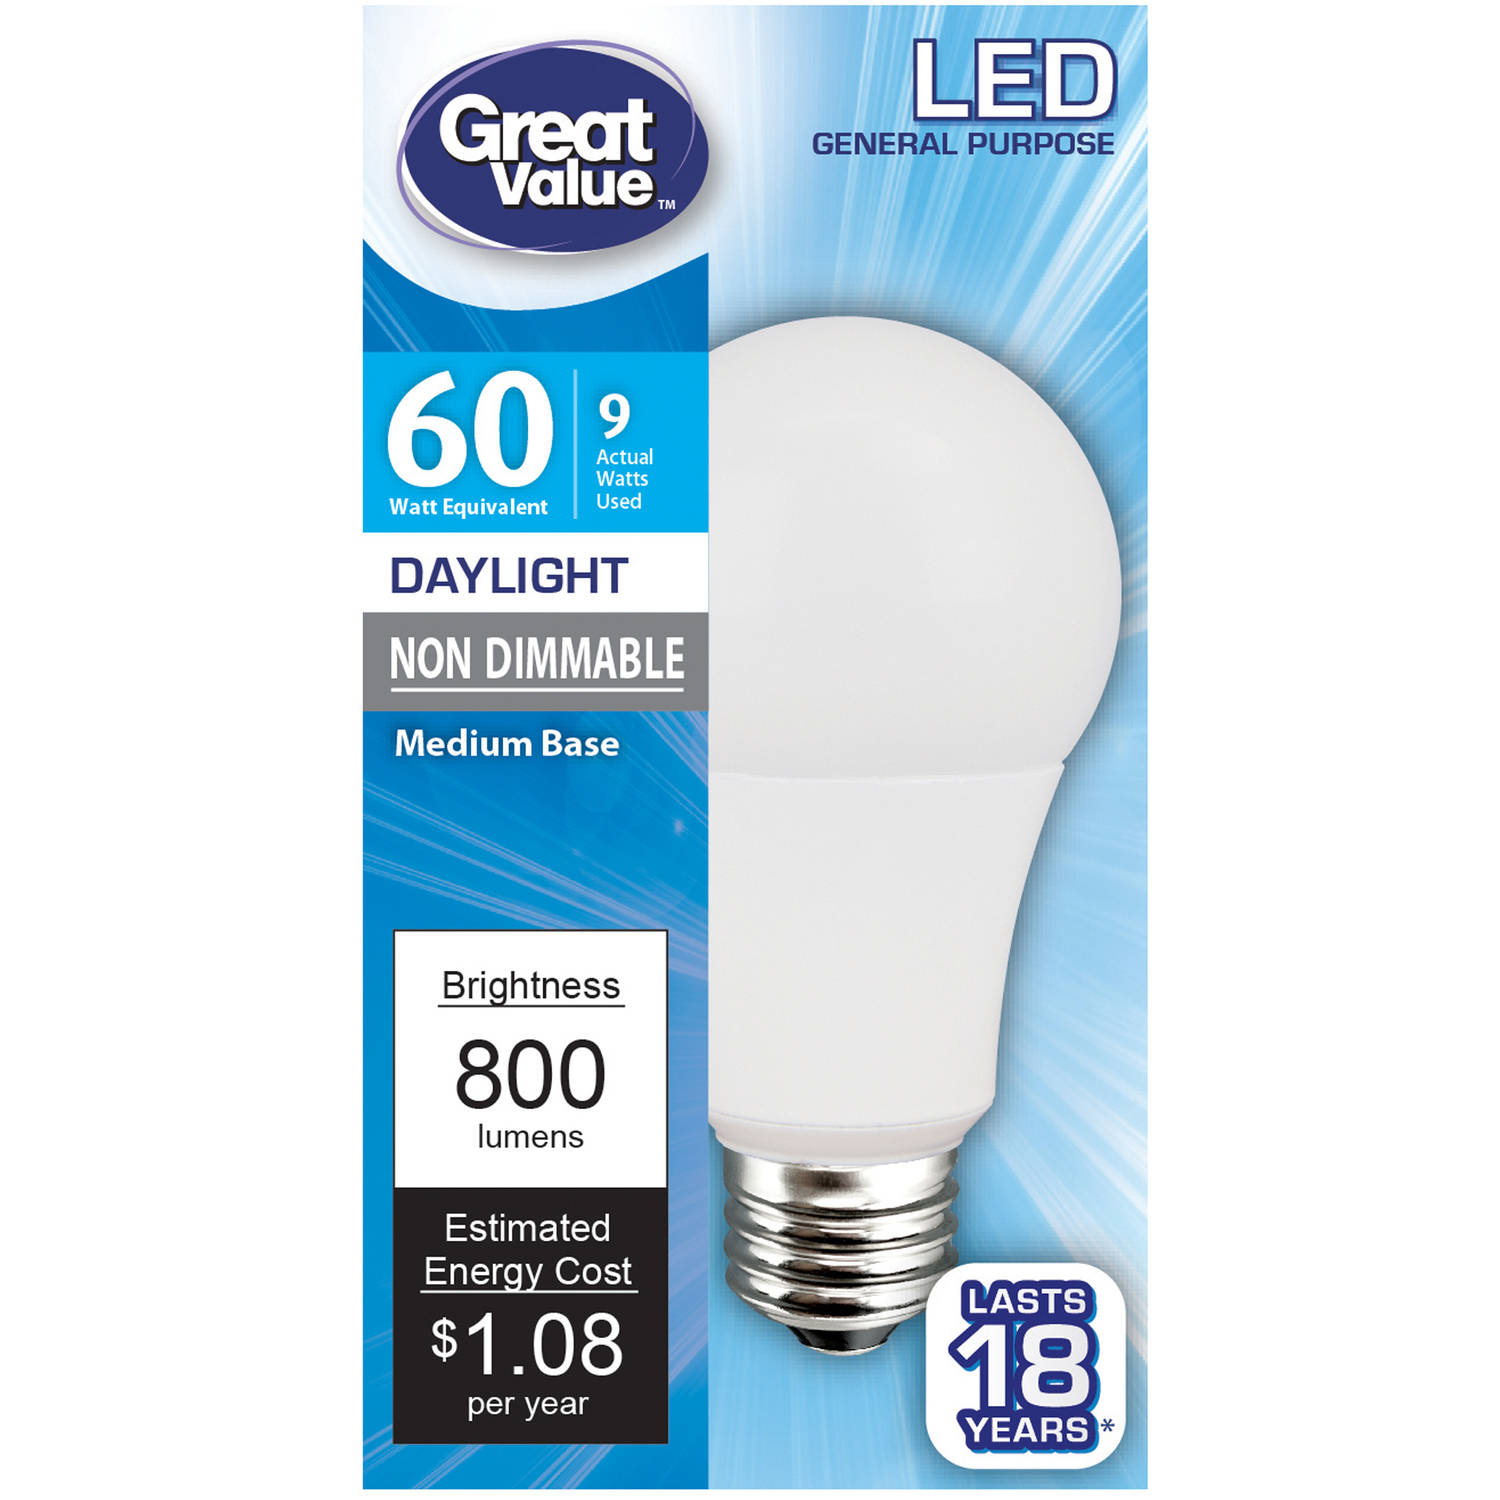 Great Value LED Light Bulb 9W (60W Equivalent) A19 (E26), Daylight